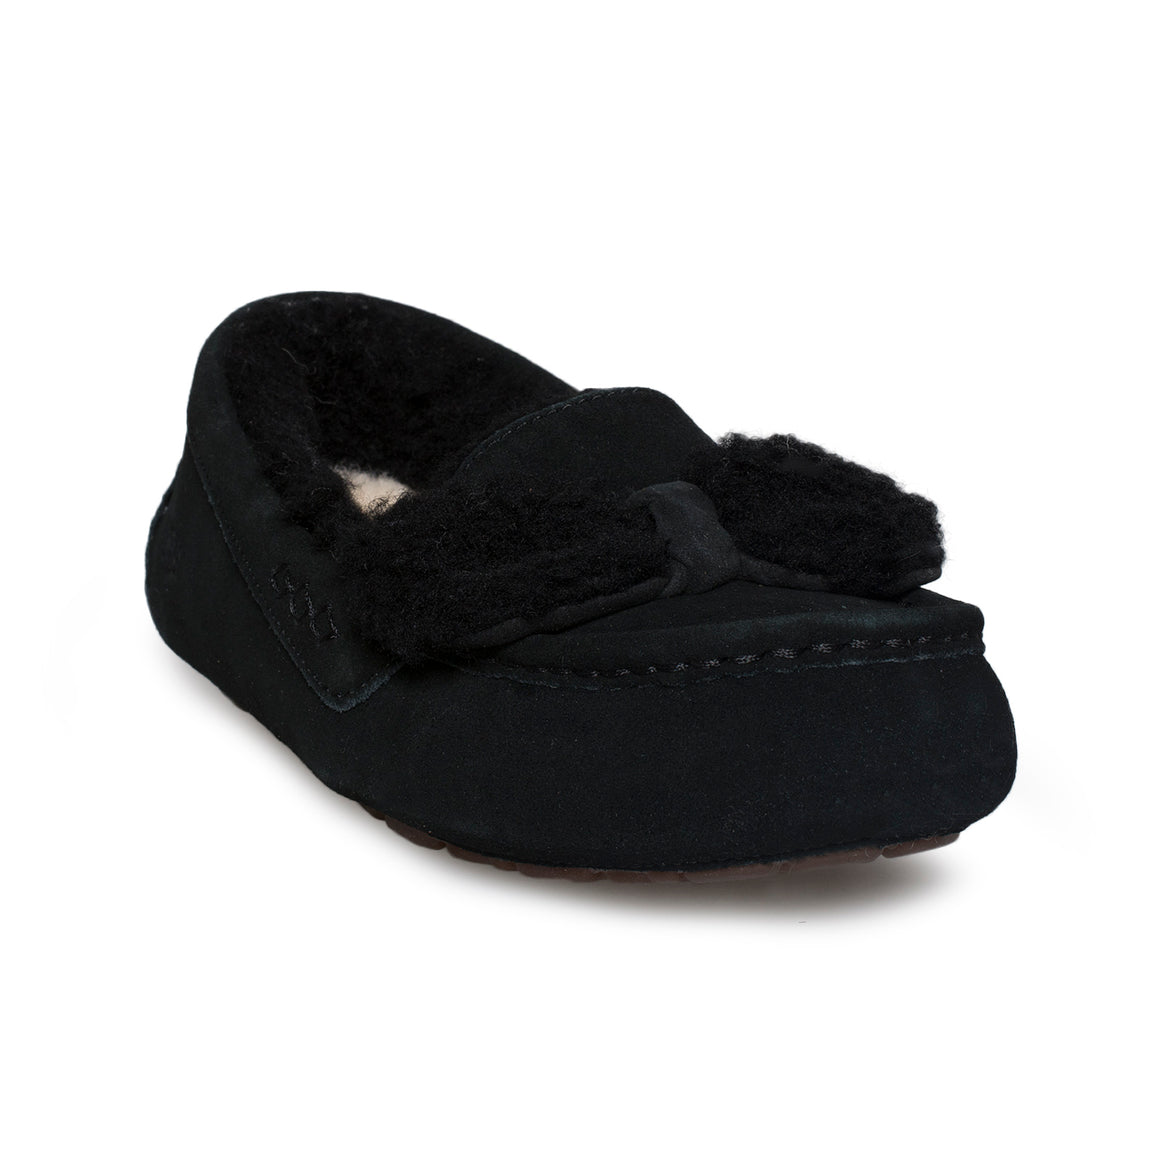 UGG Ansley Fur Bow Black Slippers